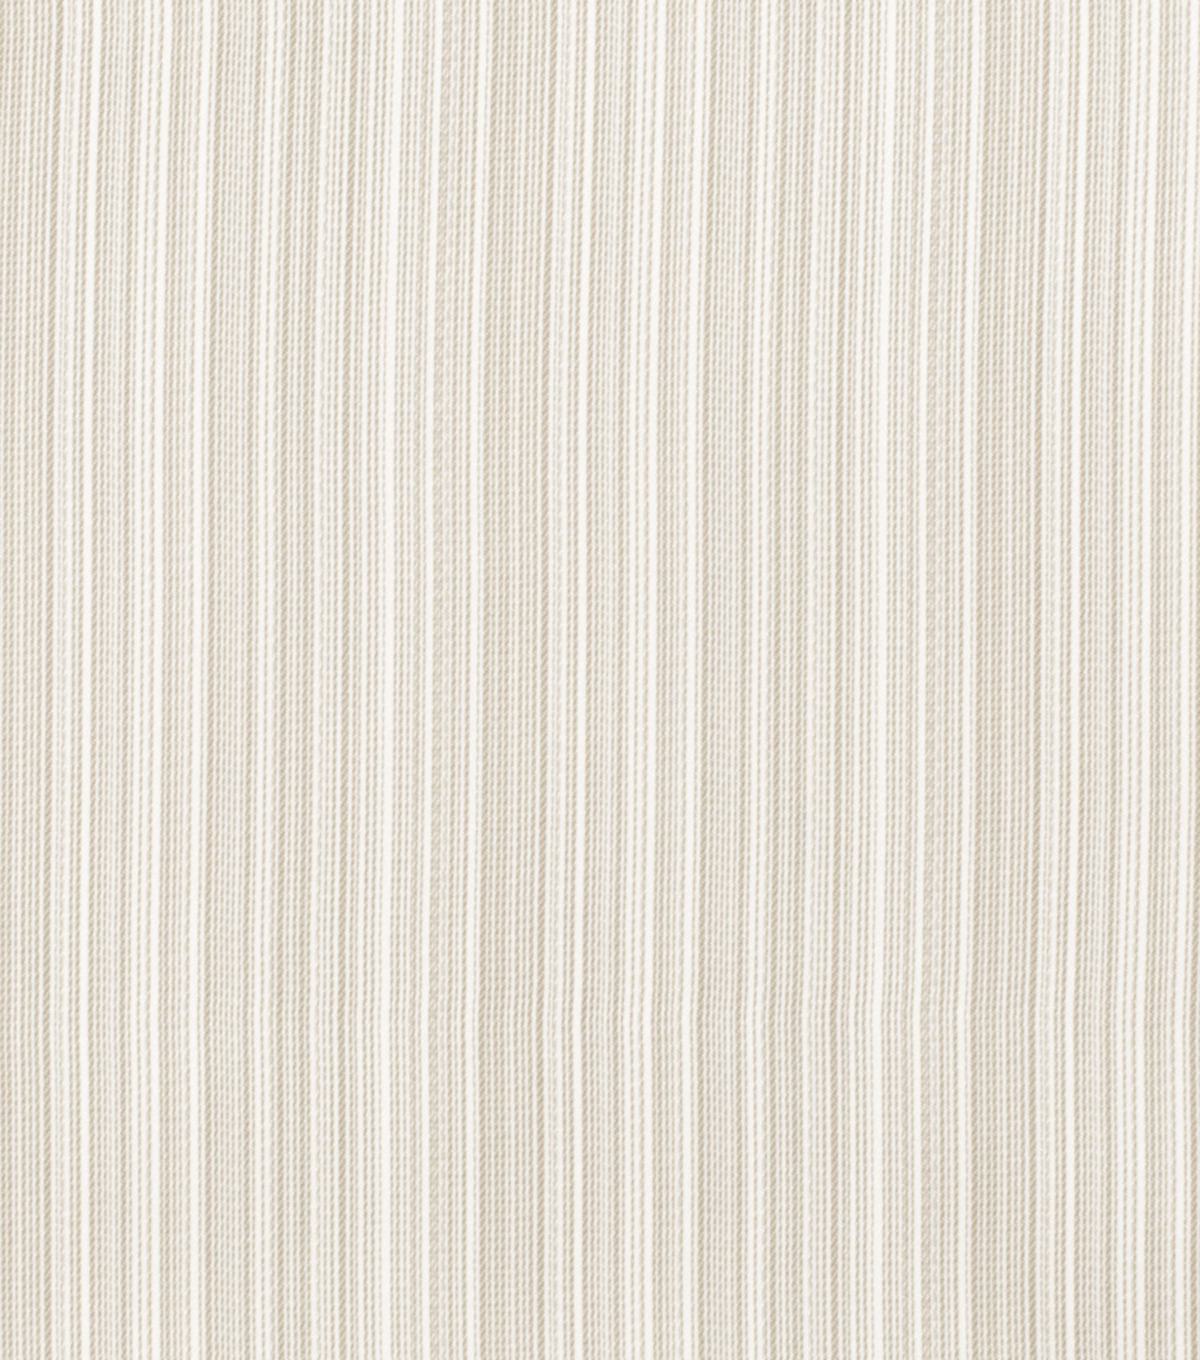 Home Decor 8\u0022x8\u0022 Fabric Swatch-Signature Series Evening Song Putty